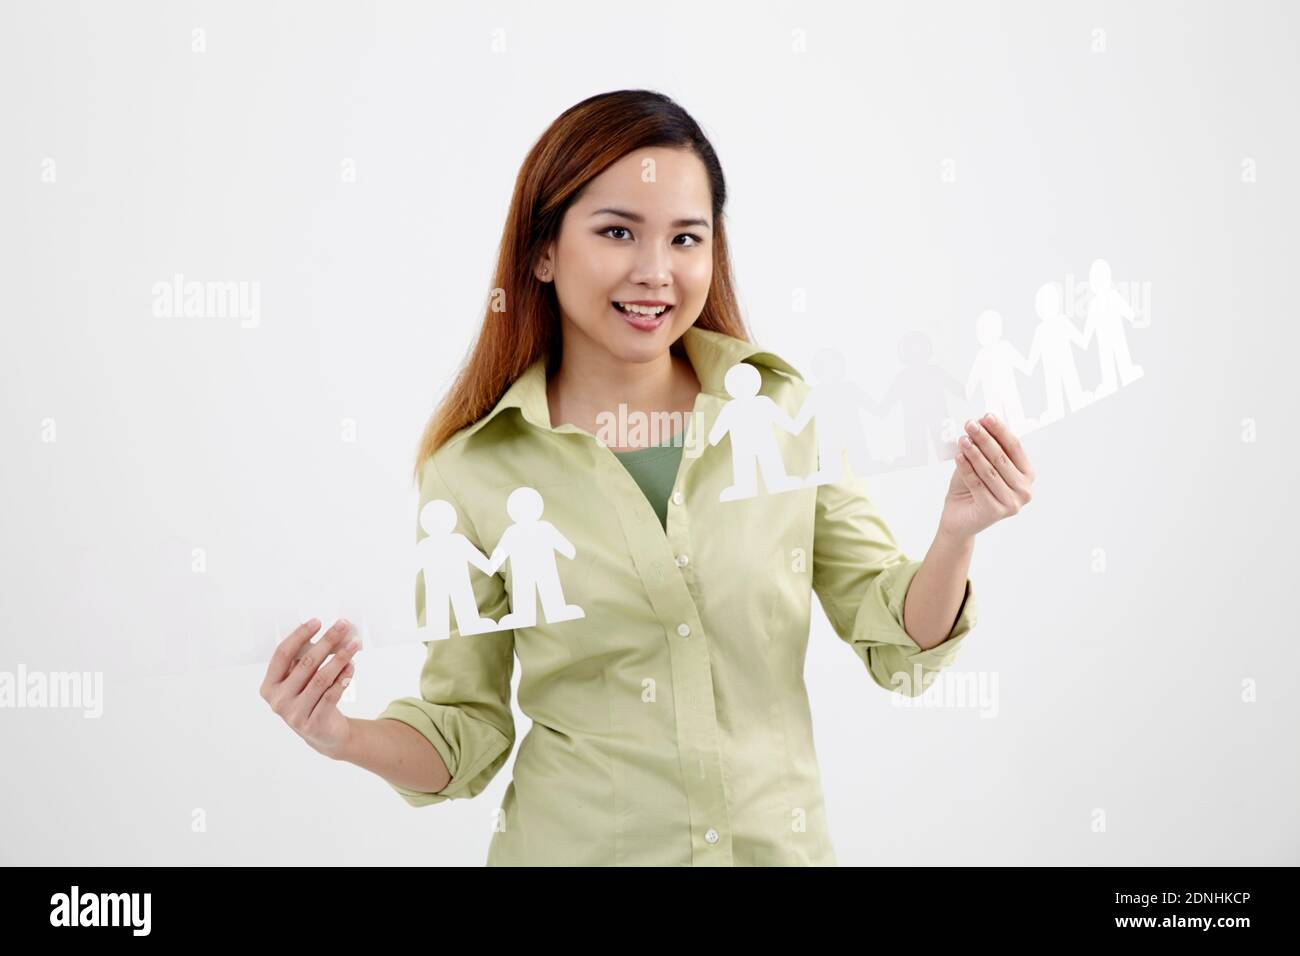 Portrait Of Happy Young Woman Holding People Paper Chains Against White Background Stock Photo